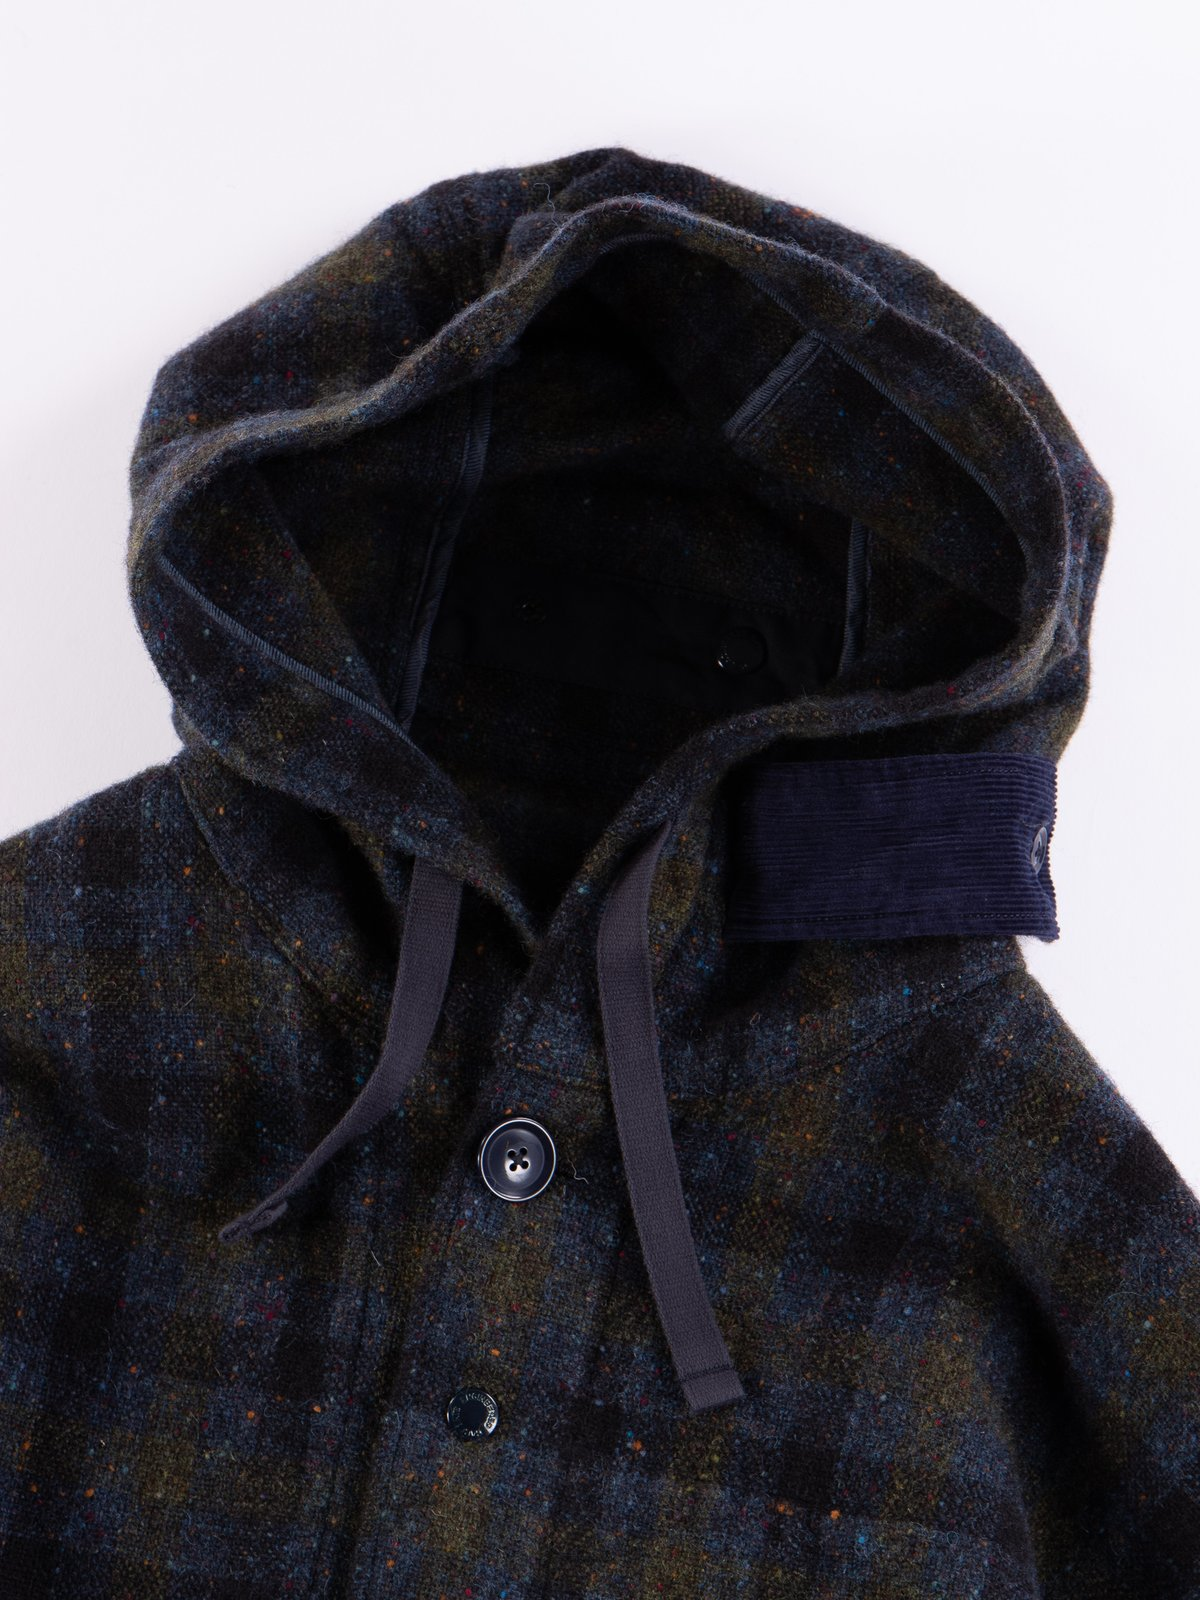 Navy Check Donegal Wool Tweed Madison Parka - Image 7